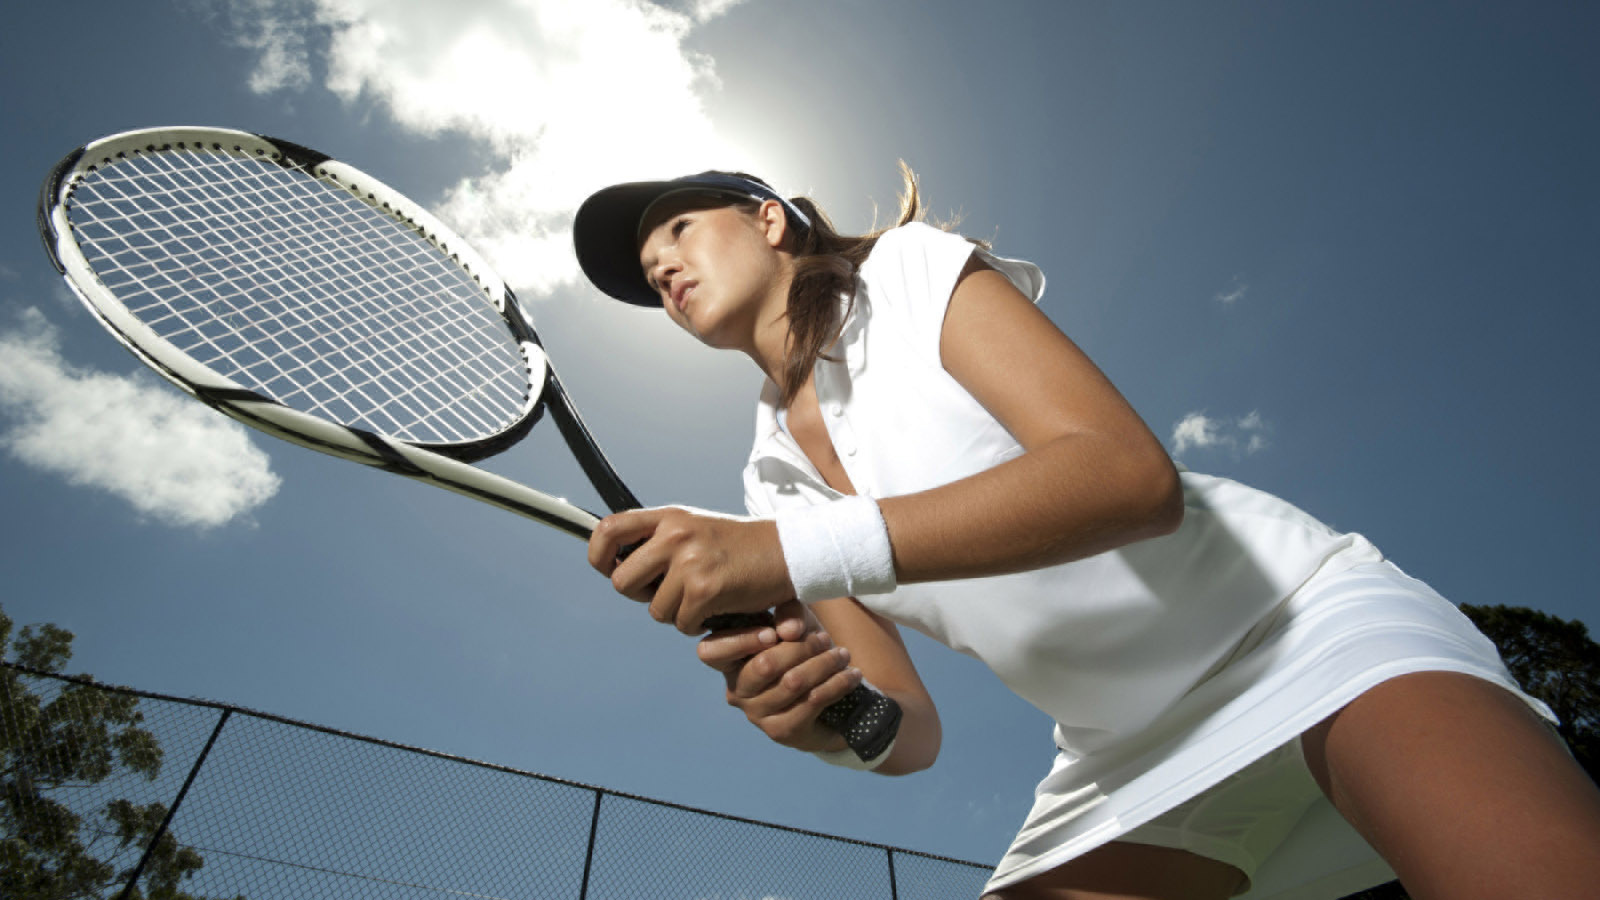 Shanghai Racquet Club – Located 16 Miles from Four Seasons Hotel Shanghai